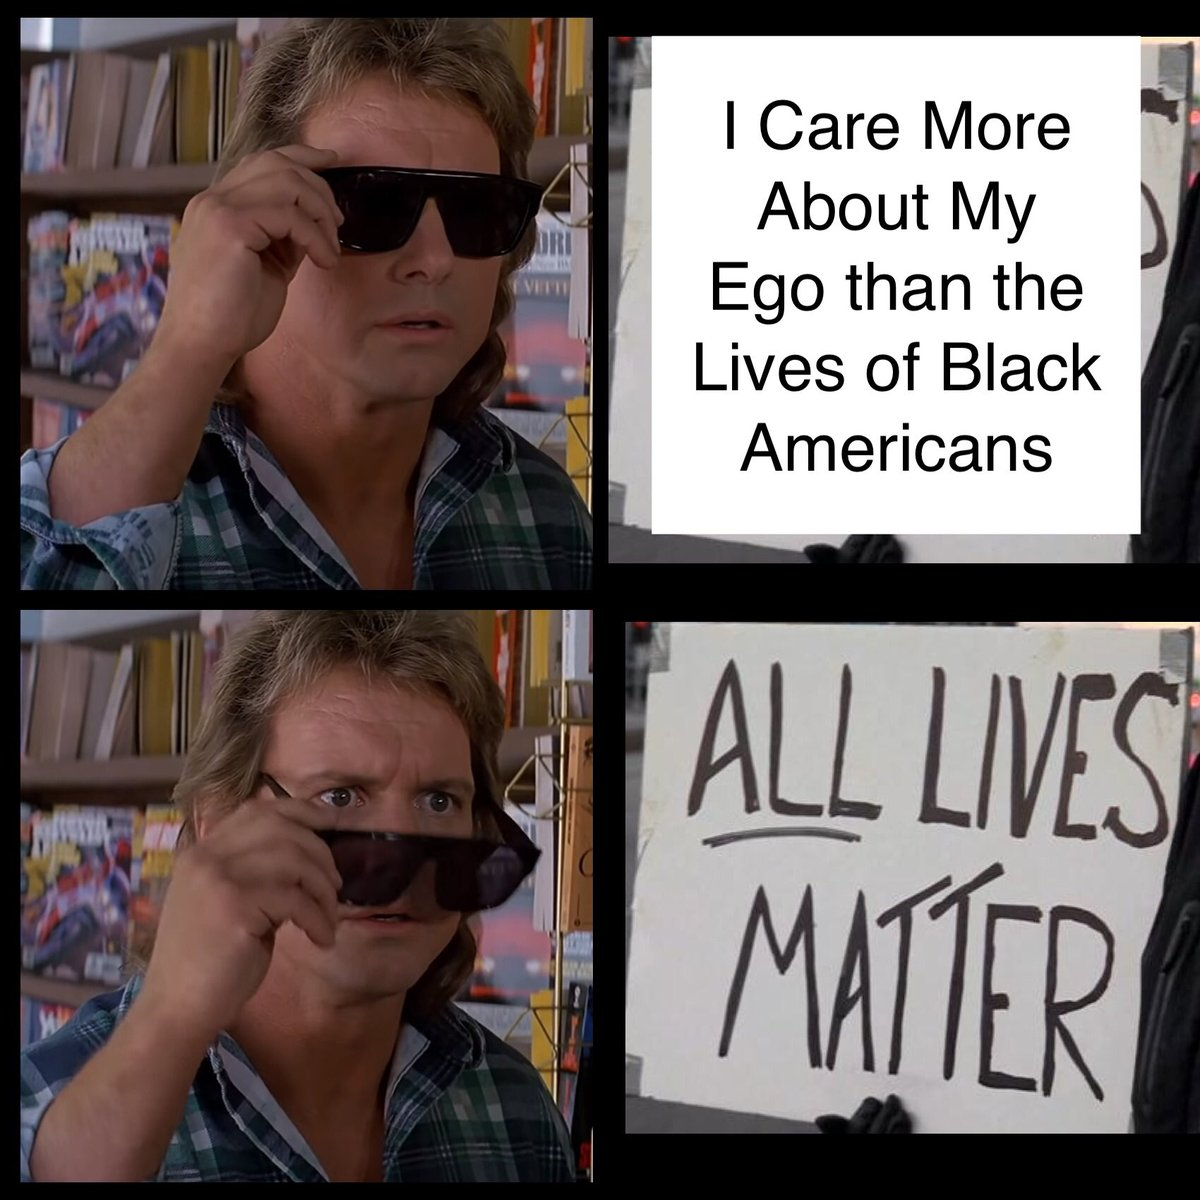 I love #80s movies and Black Lives. This should clear things up a bit. #BlackLivesMatterpic.twitter.com/MjUnioV5hy